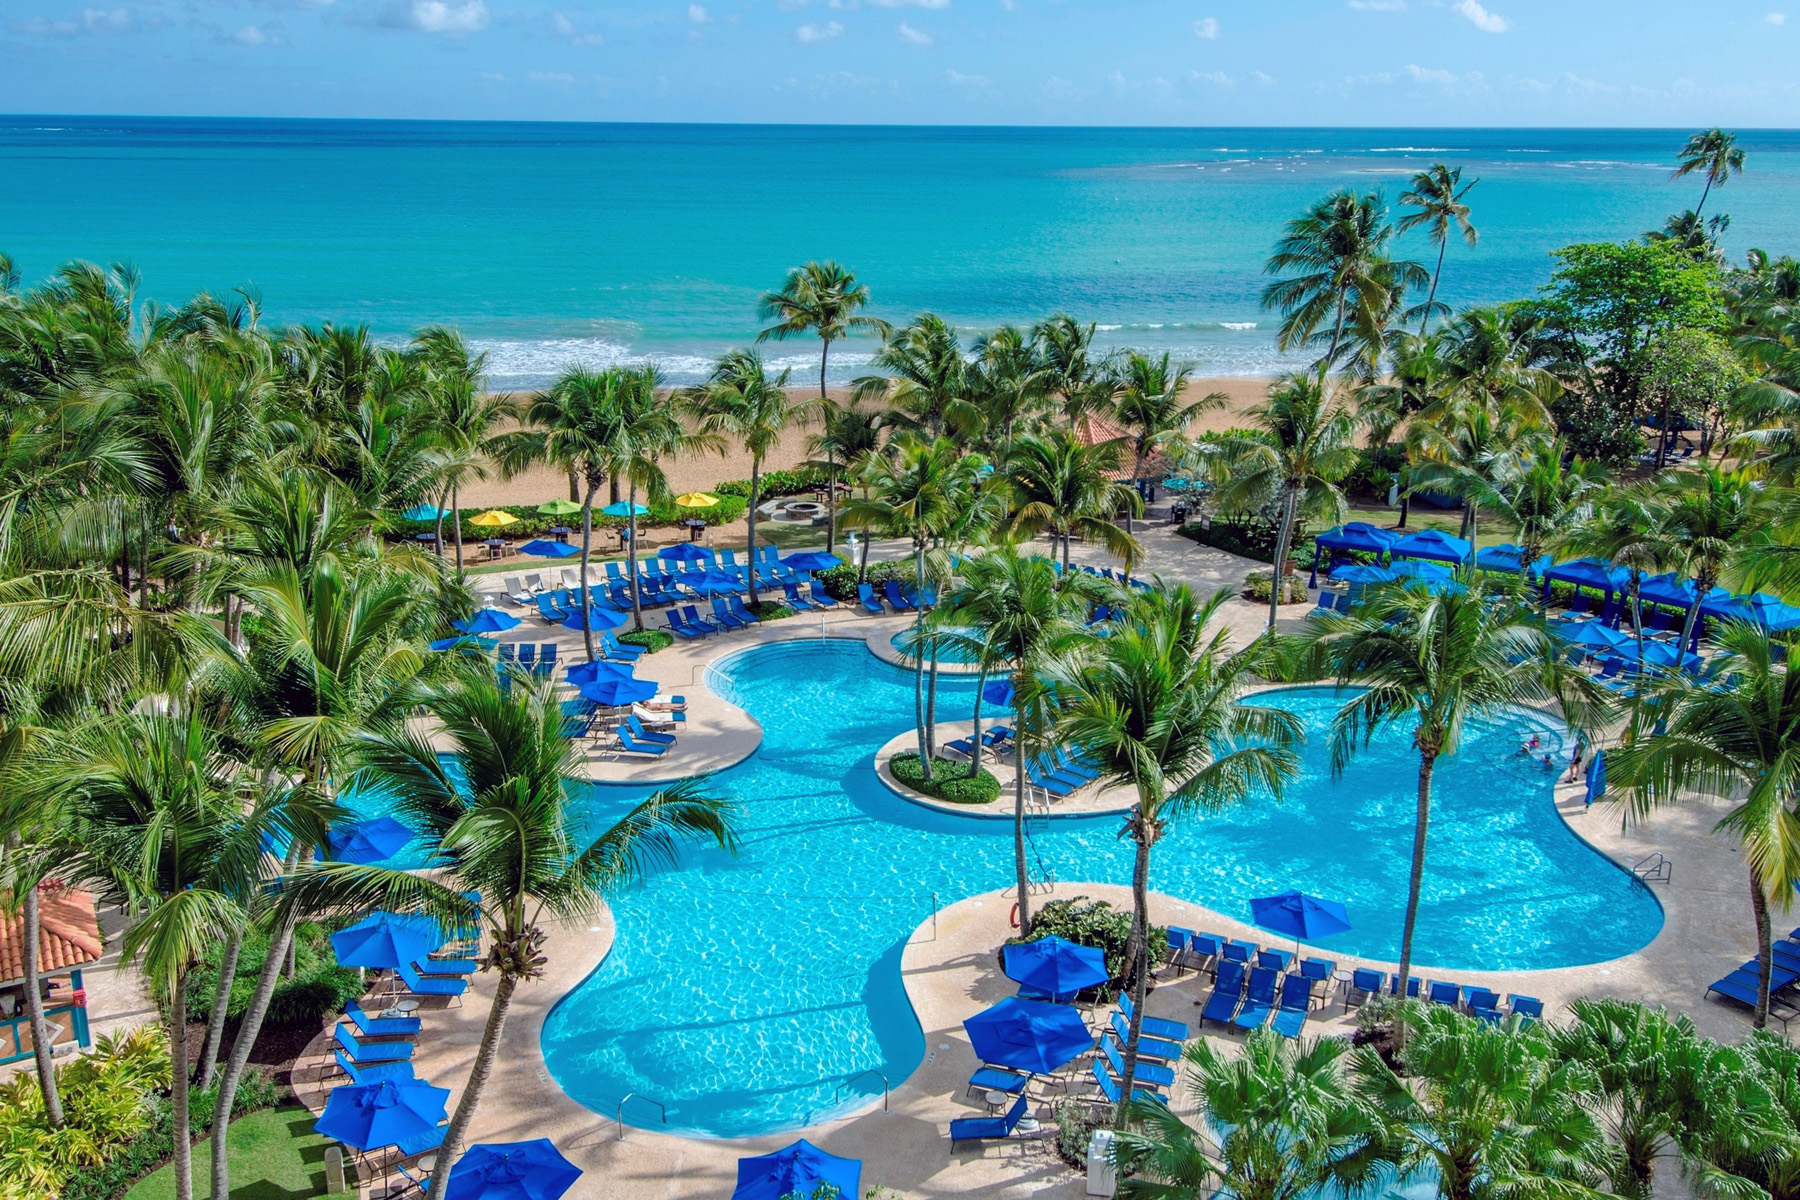 Wyndham Grand Rio Mar Beach Resort & Spa - Rio Grande, Puerto Rico